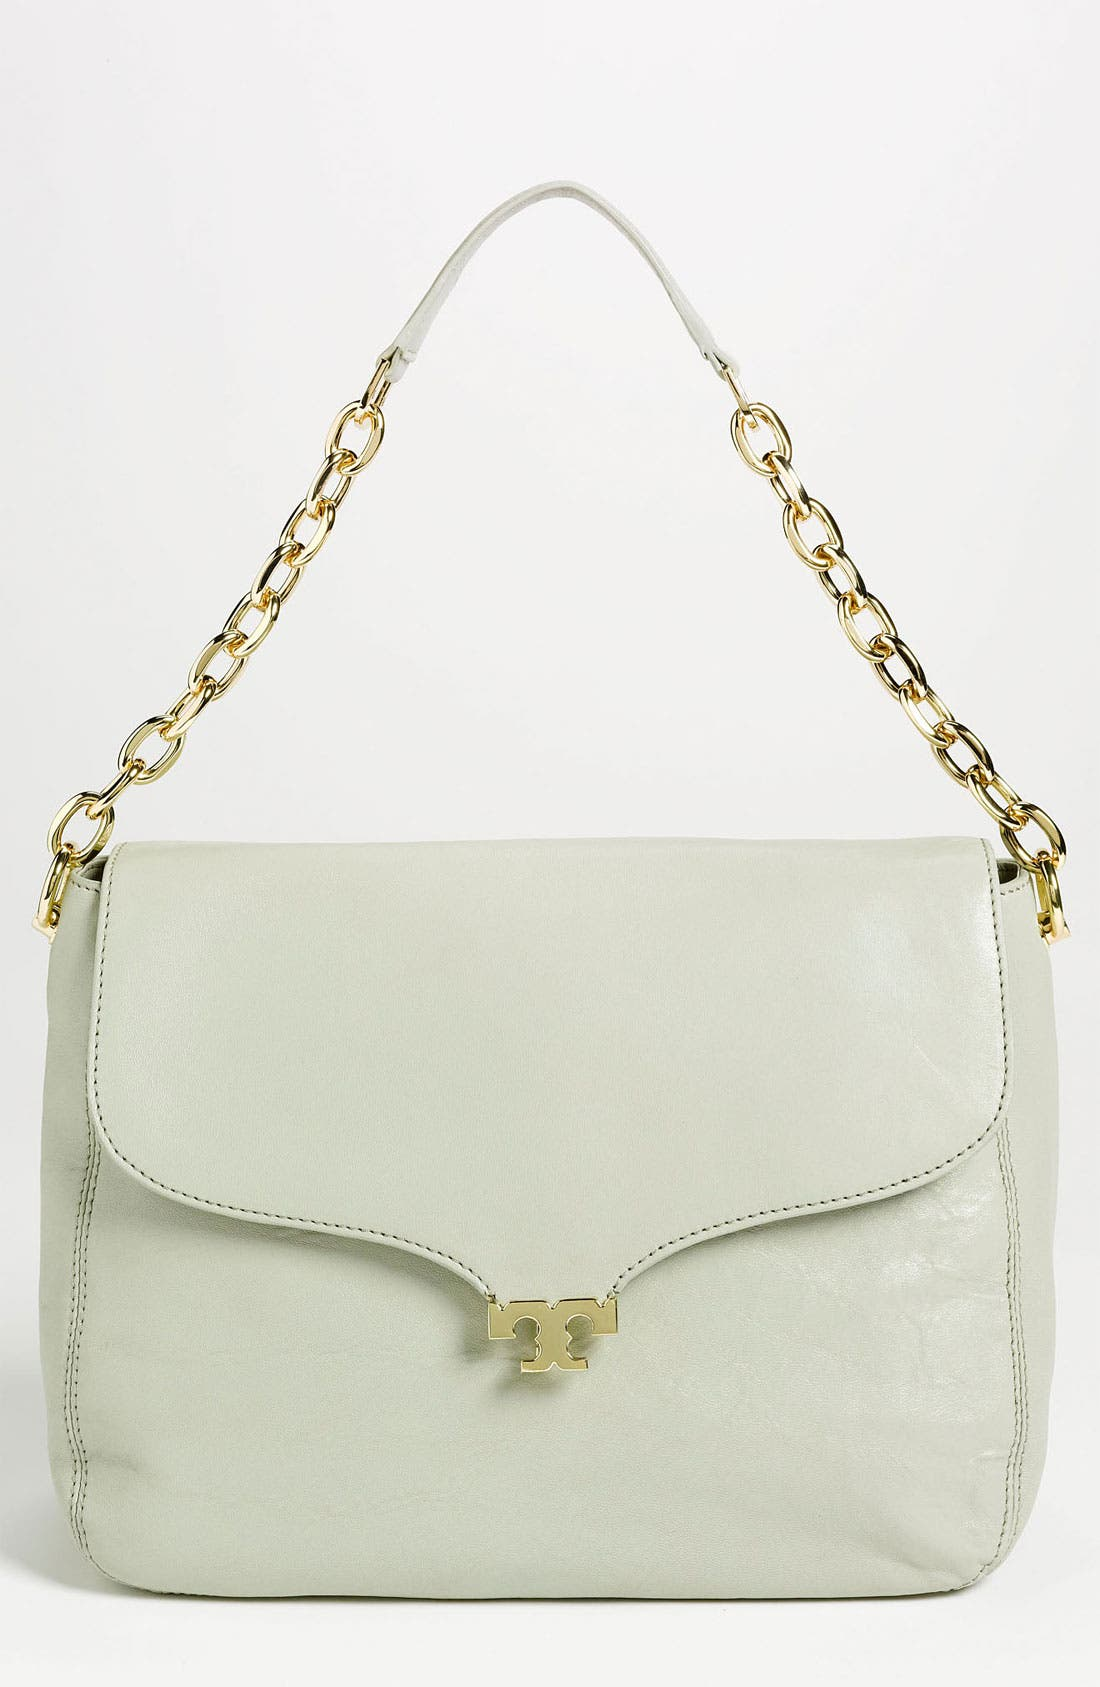 Main Image - Tory Burch 'Megan' Shoulder Bag